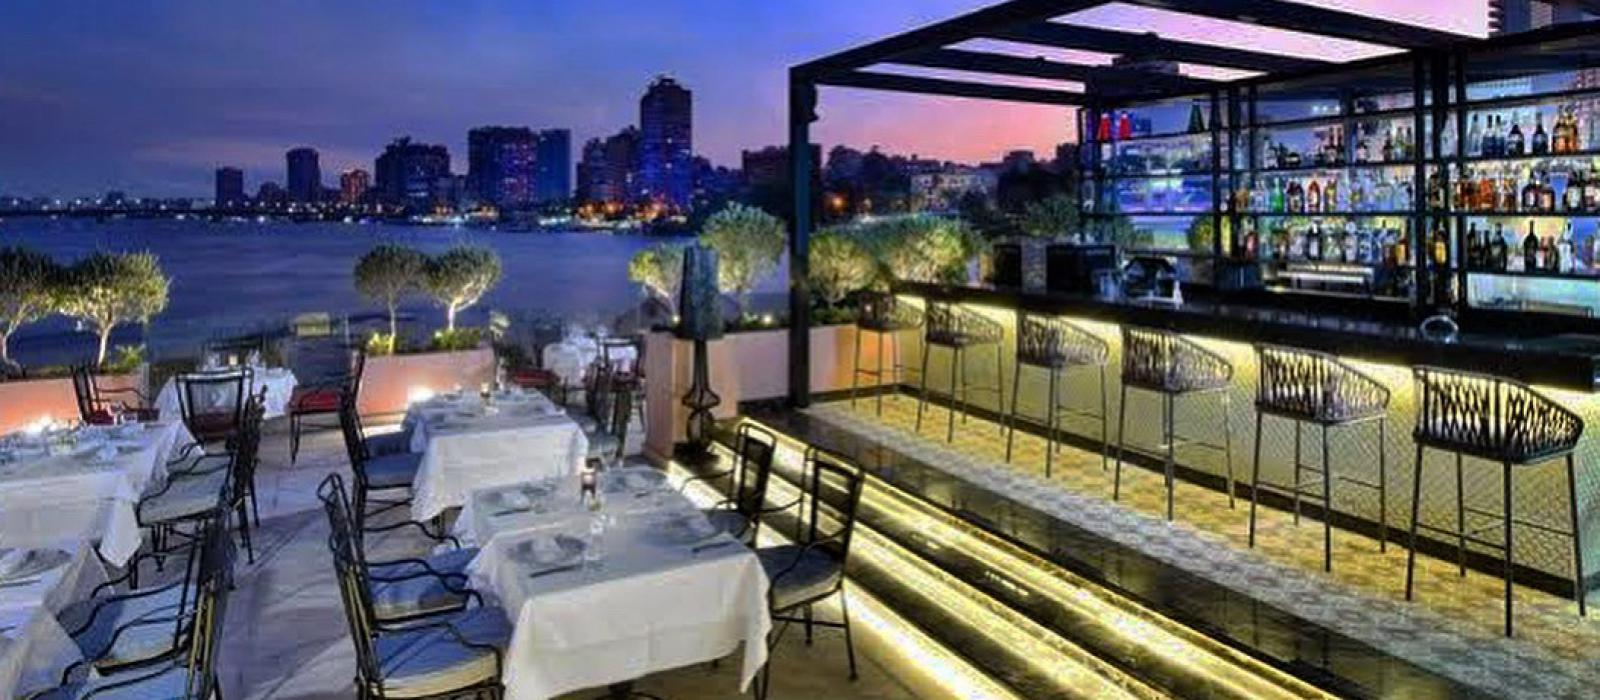 Sofitel Gezirah Kebabgy Terrace is Opened !